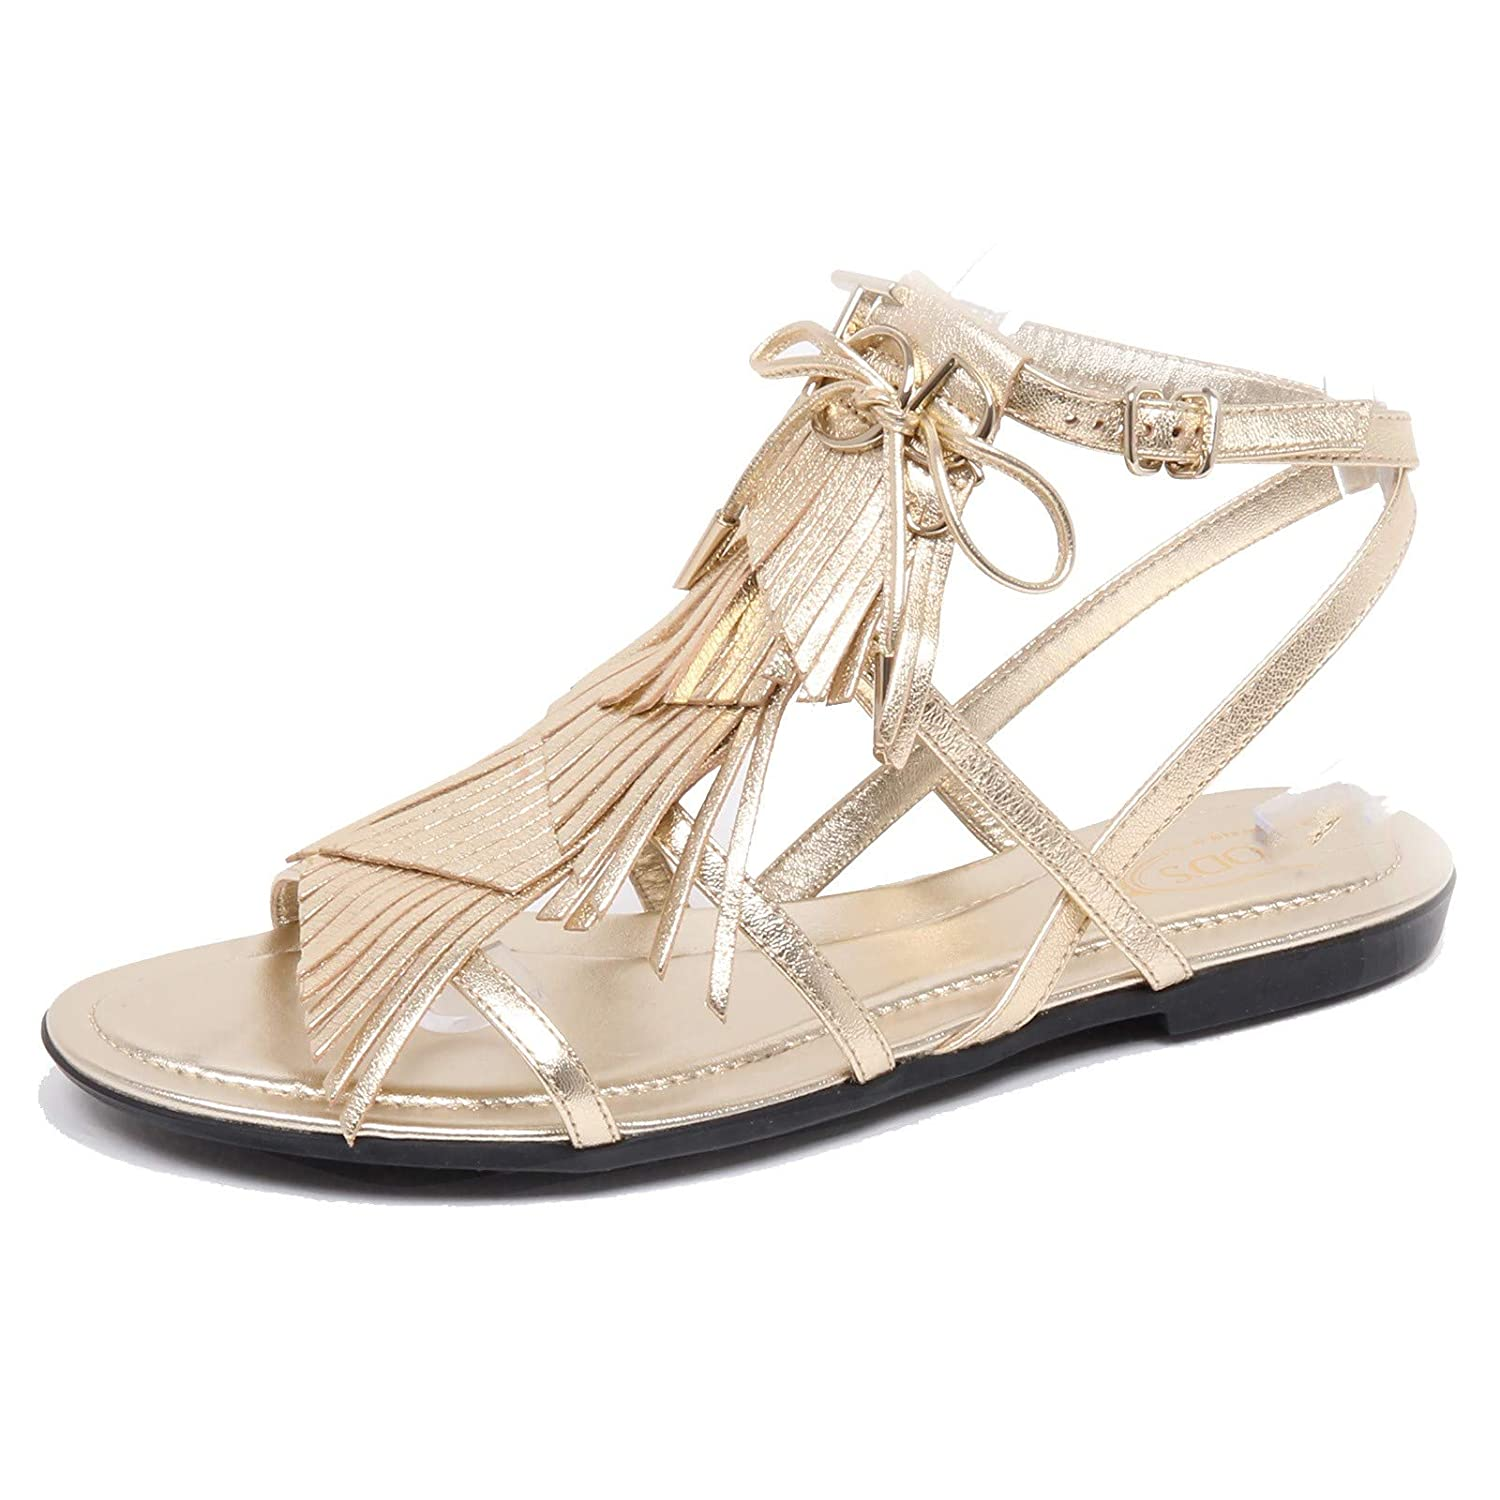 Tod's F3188 Sandalo damen Light Gold schuhe Sandal schuhe Woman  | Vogue